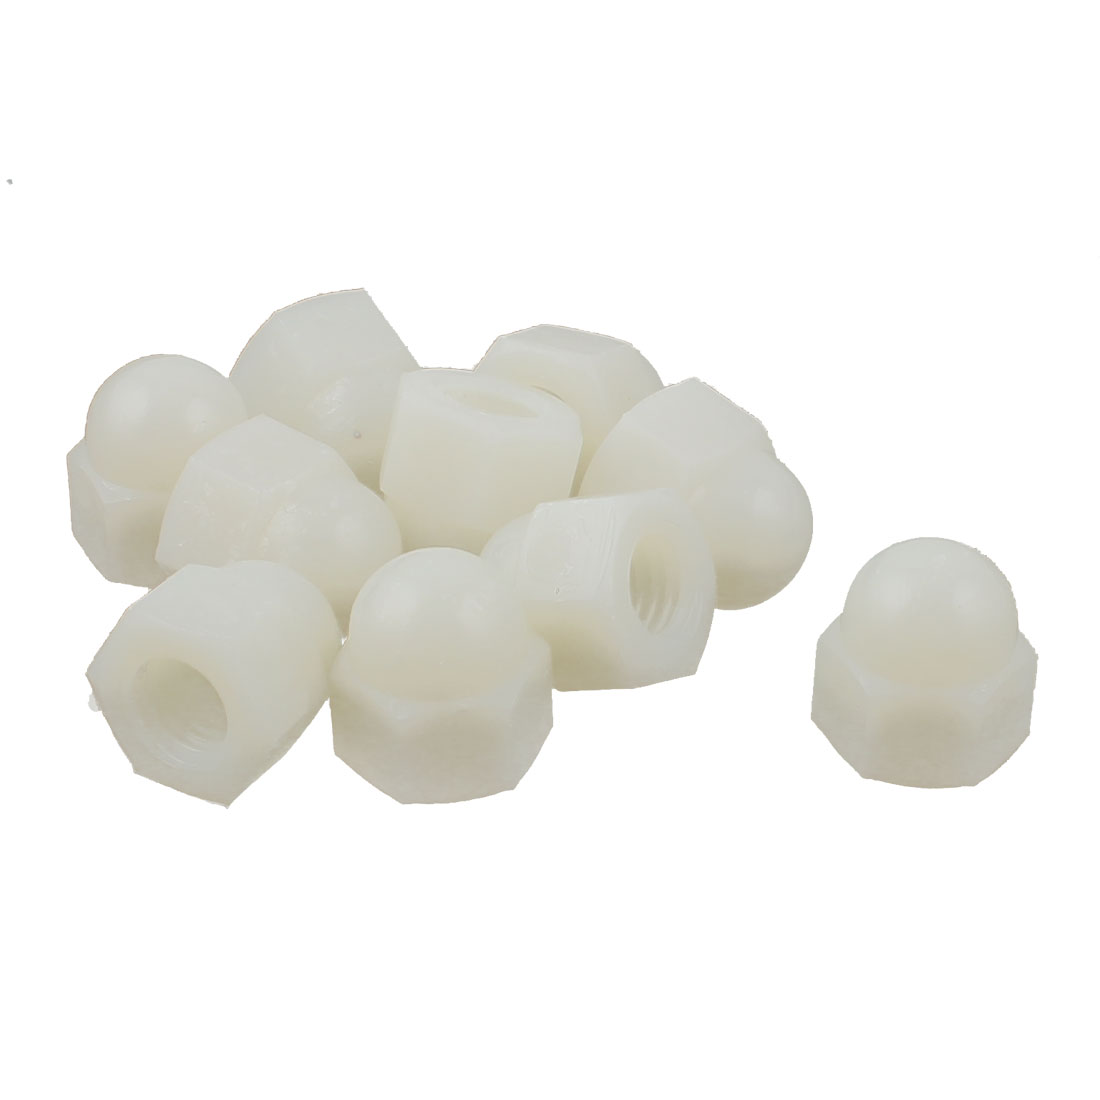 10pcs M10 Plastic Dome Bolt Nut Caps Inner Threaded Protection Covers Hexagon Shaped Off-White